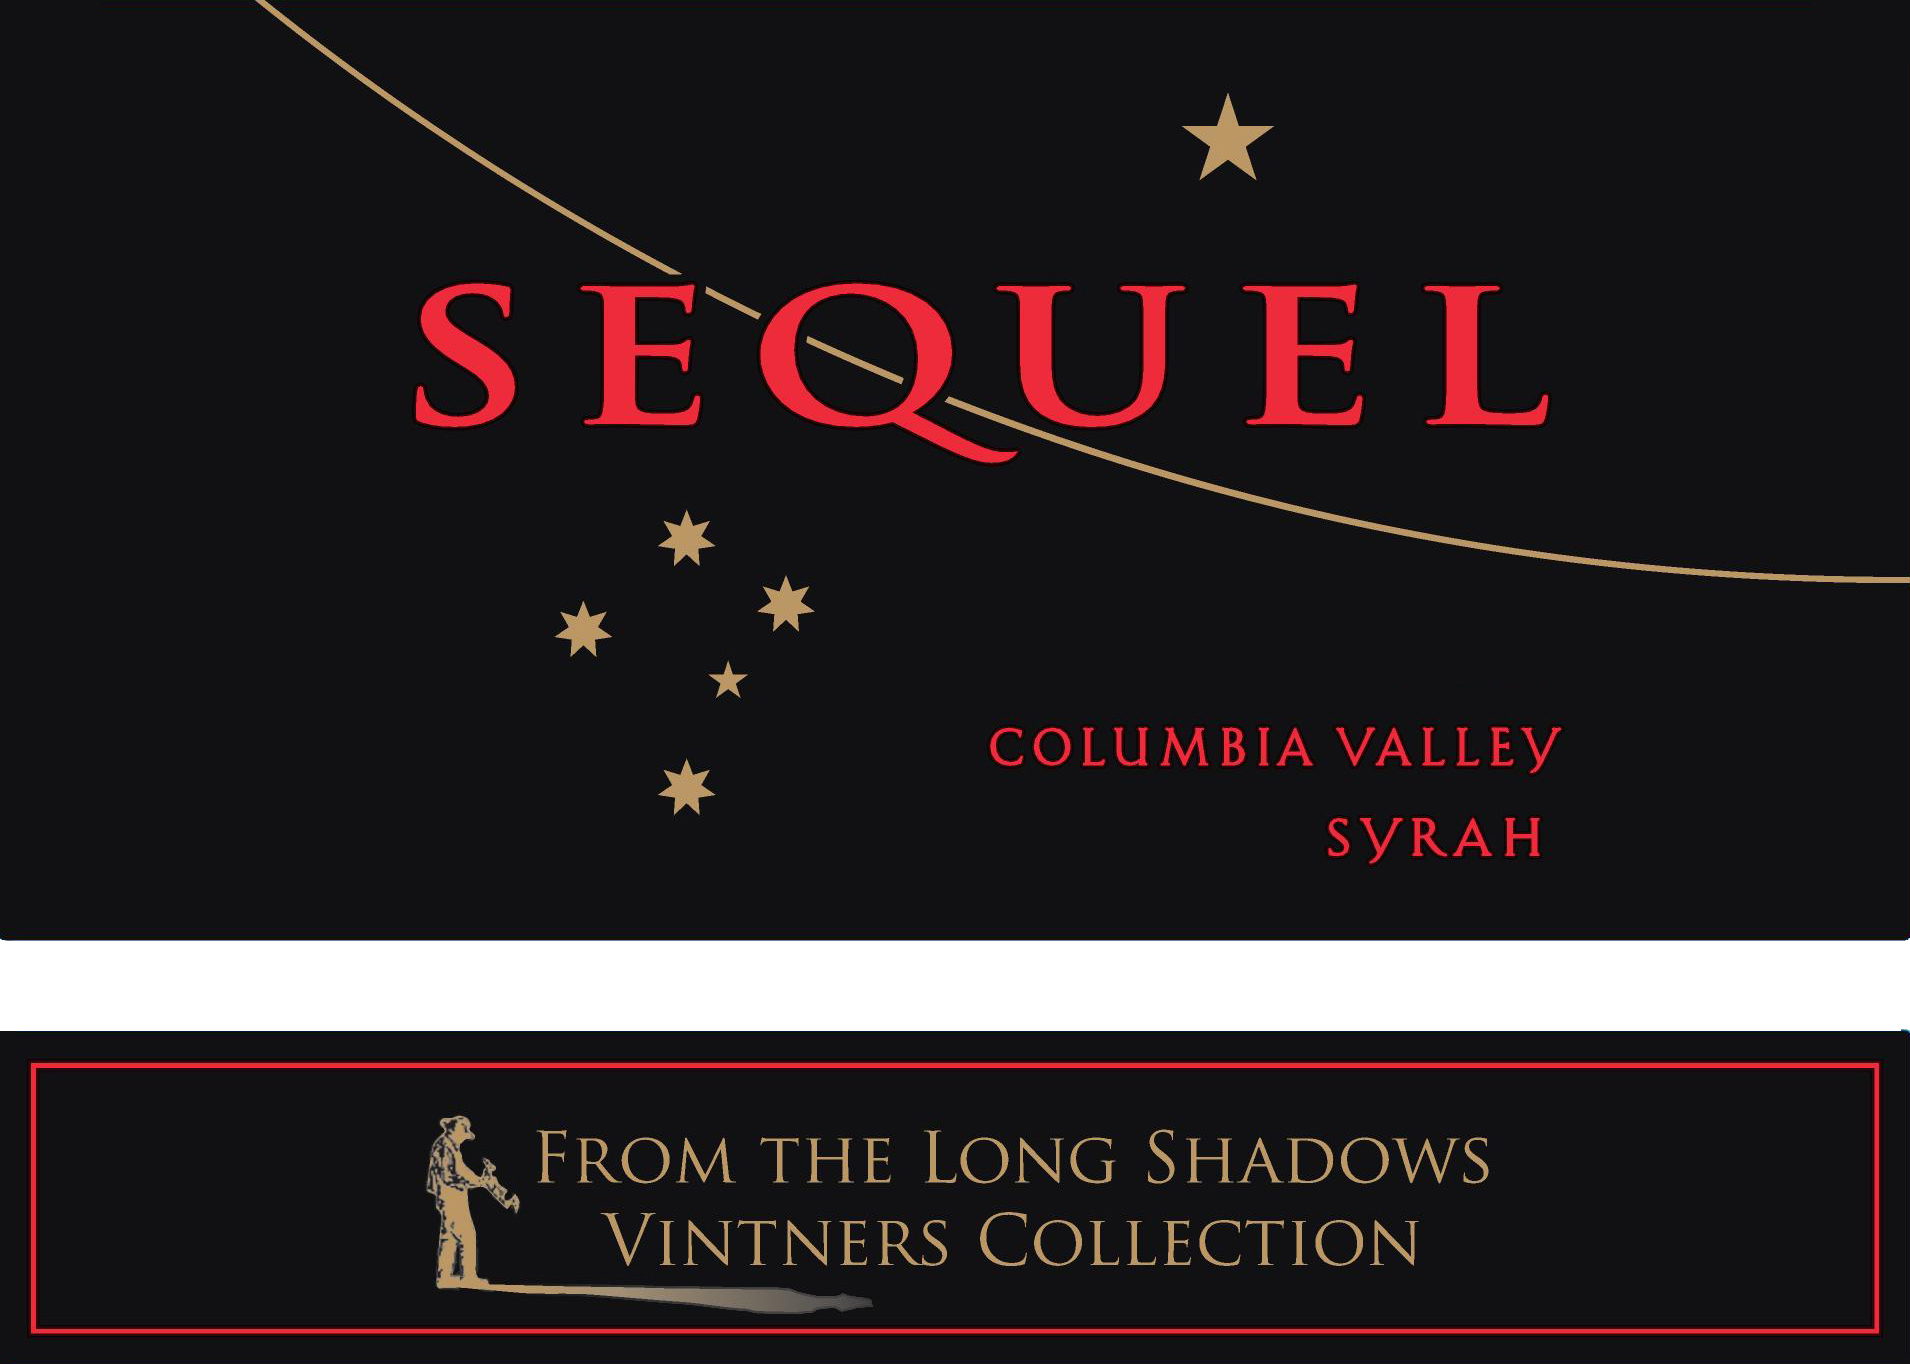 2015 Long Shadows Winery Syrah Sequel